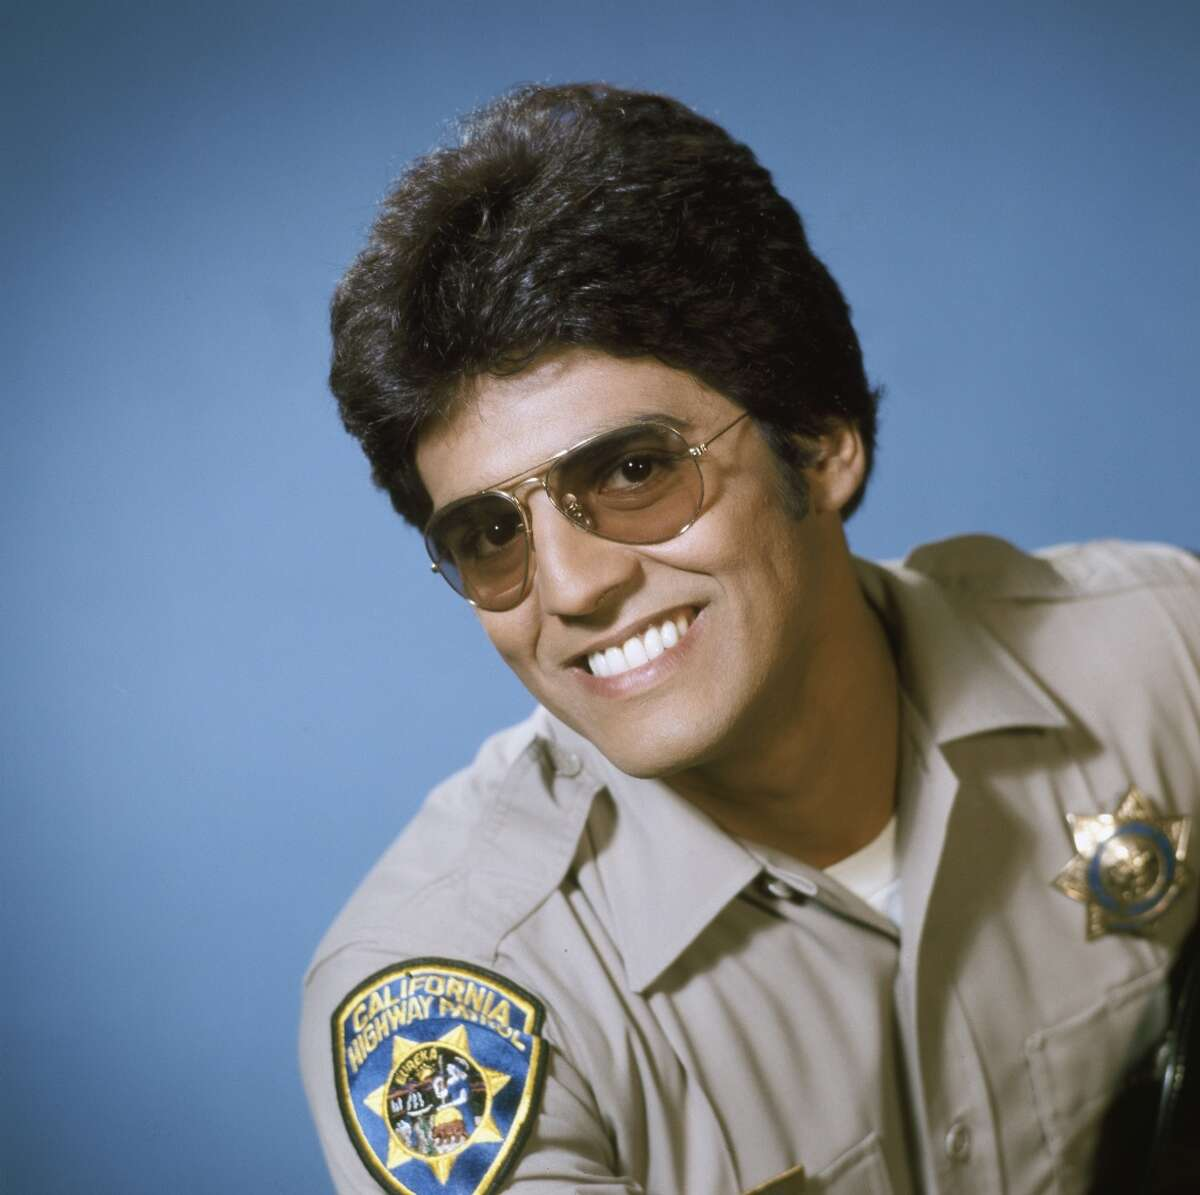 Erik Estrada started the decade off as one of People Magazine's